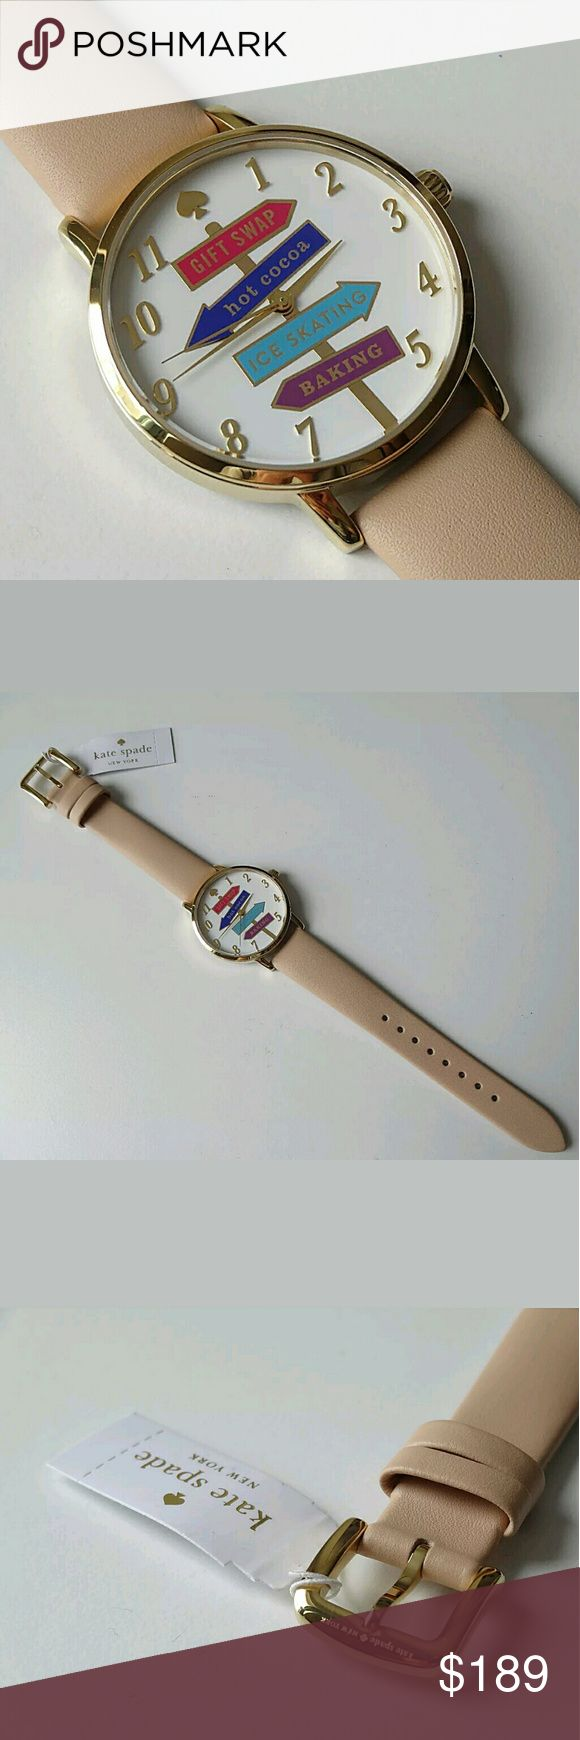 Brand new Kate Spade NY ladies watch Brand NWT Gorgeous Kate Spade Metro Ladies Watch  FIRM PRICE FIRM PRICE  $189.00 . AUTHENTIC WATCH  . AUTHENTIC BOX  . AUTHENTIC MANUAL    SHIPPING  PLEASE ALLOW 3-4 BUSINESS DAYS FOR ME TO SHIPPED IT OFF.I HAVE TO GET IT FROM MY STORE.   THANK YOU FOR YOUR UNDERSTANDING. kate spade  Accessories Watches